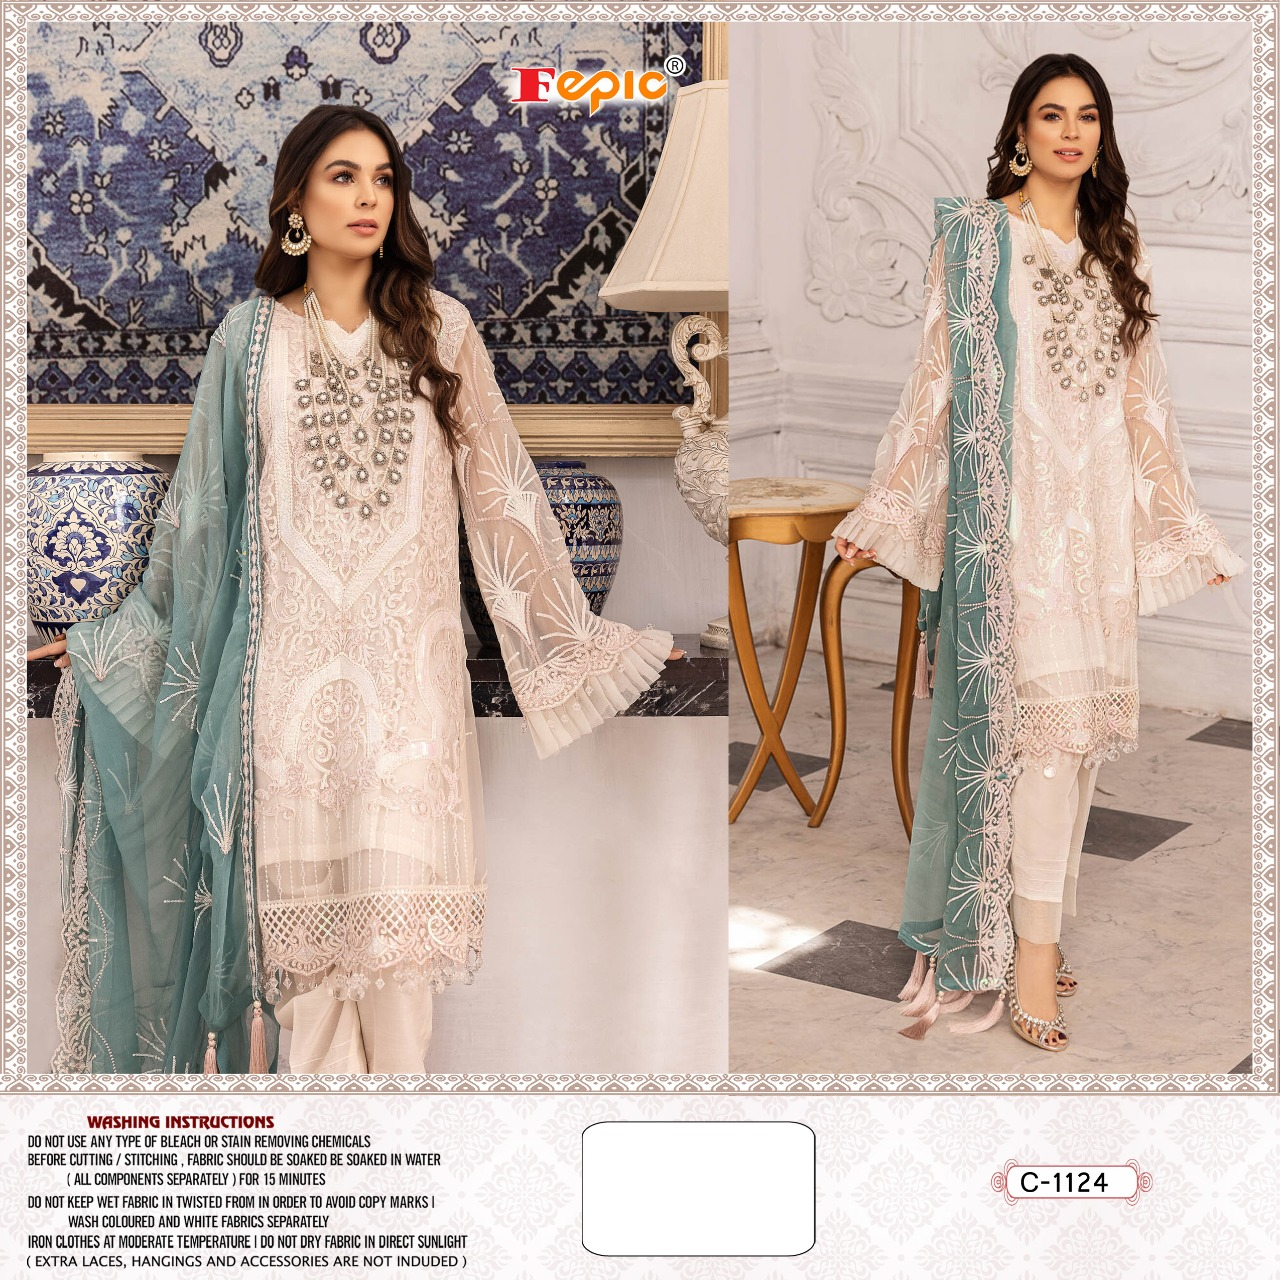 Fepic Rosemeen D No C 1124 Designer Net Embroidery With Pearls Work With Neck Embroidery Work Pakistani Pattern Suits In Singles